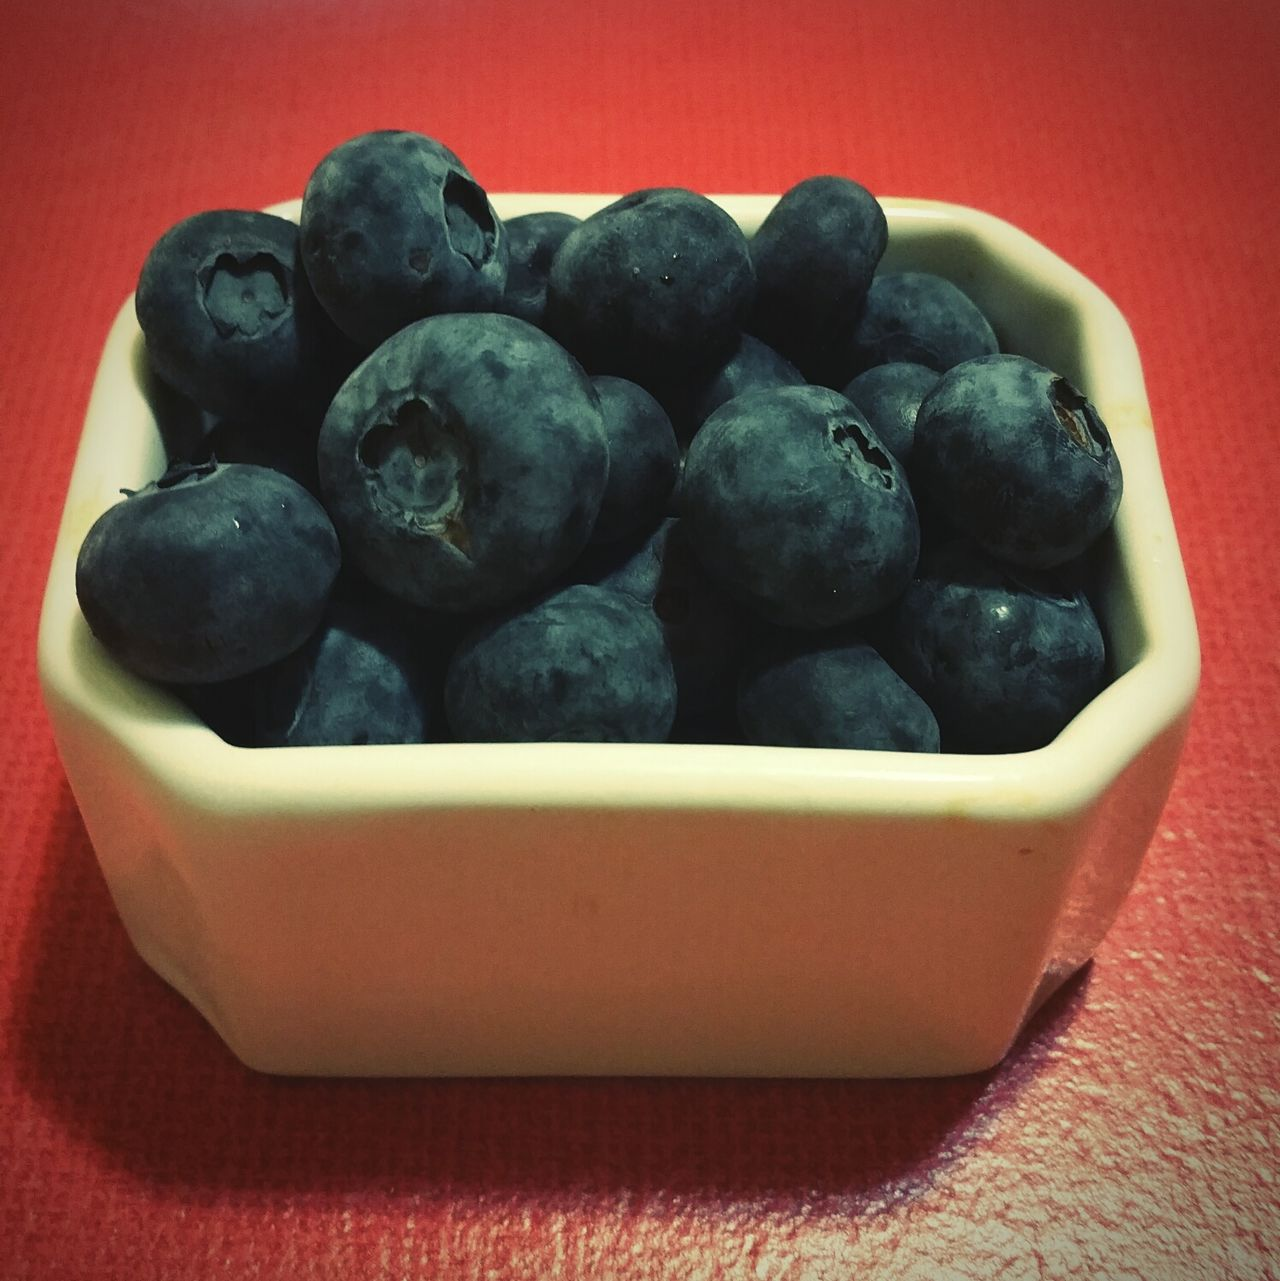 My favorite fruit Food Bowl Table Healthy Eating Freshness Indoors  Sweet Food Ready-to-eat Close-up Blueberries Fruit